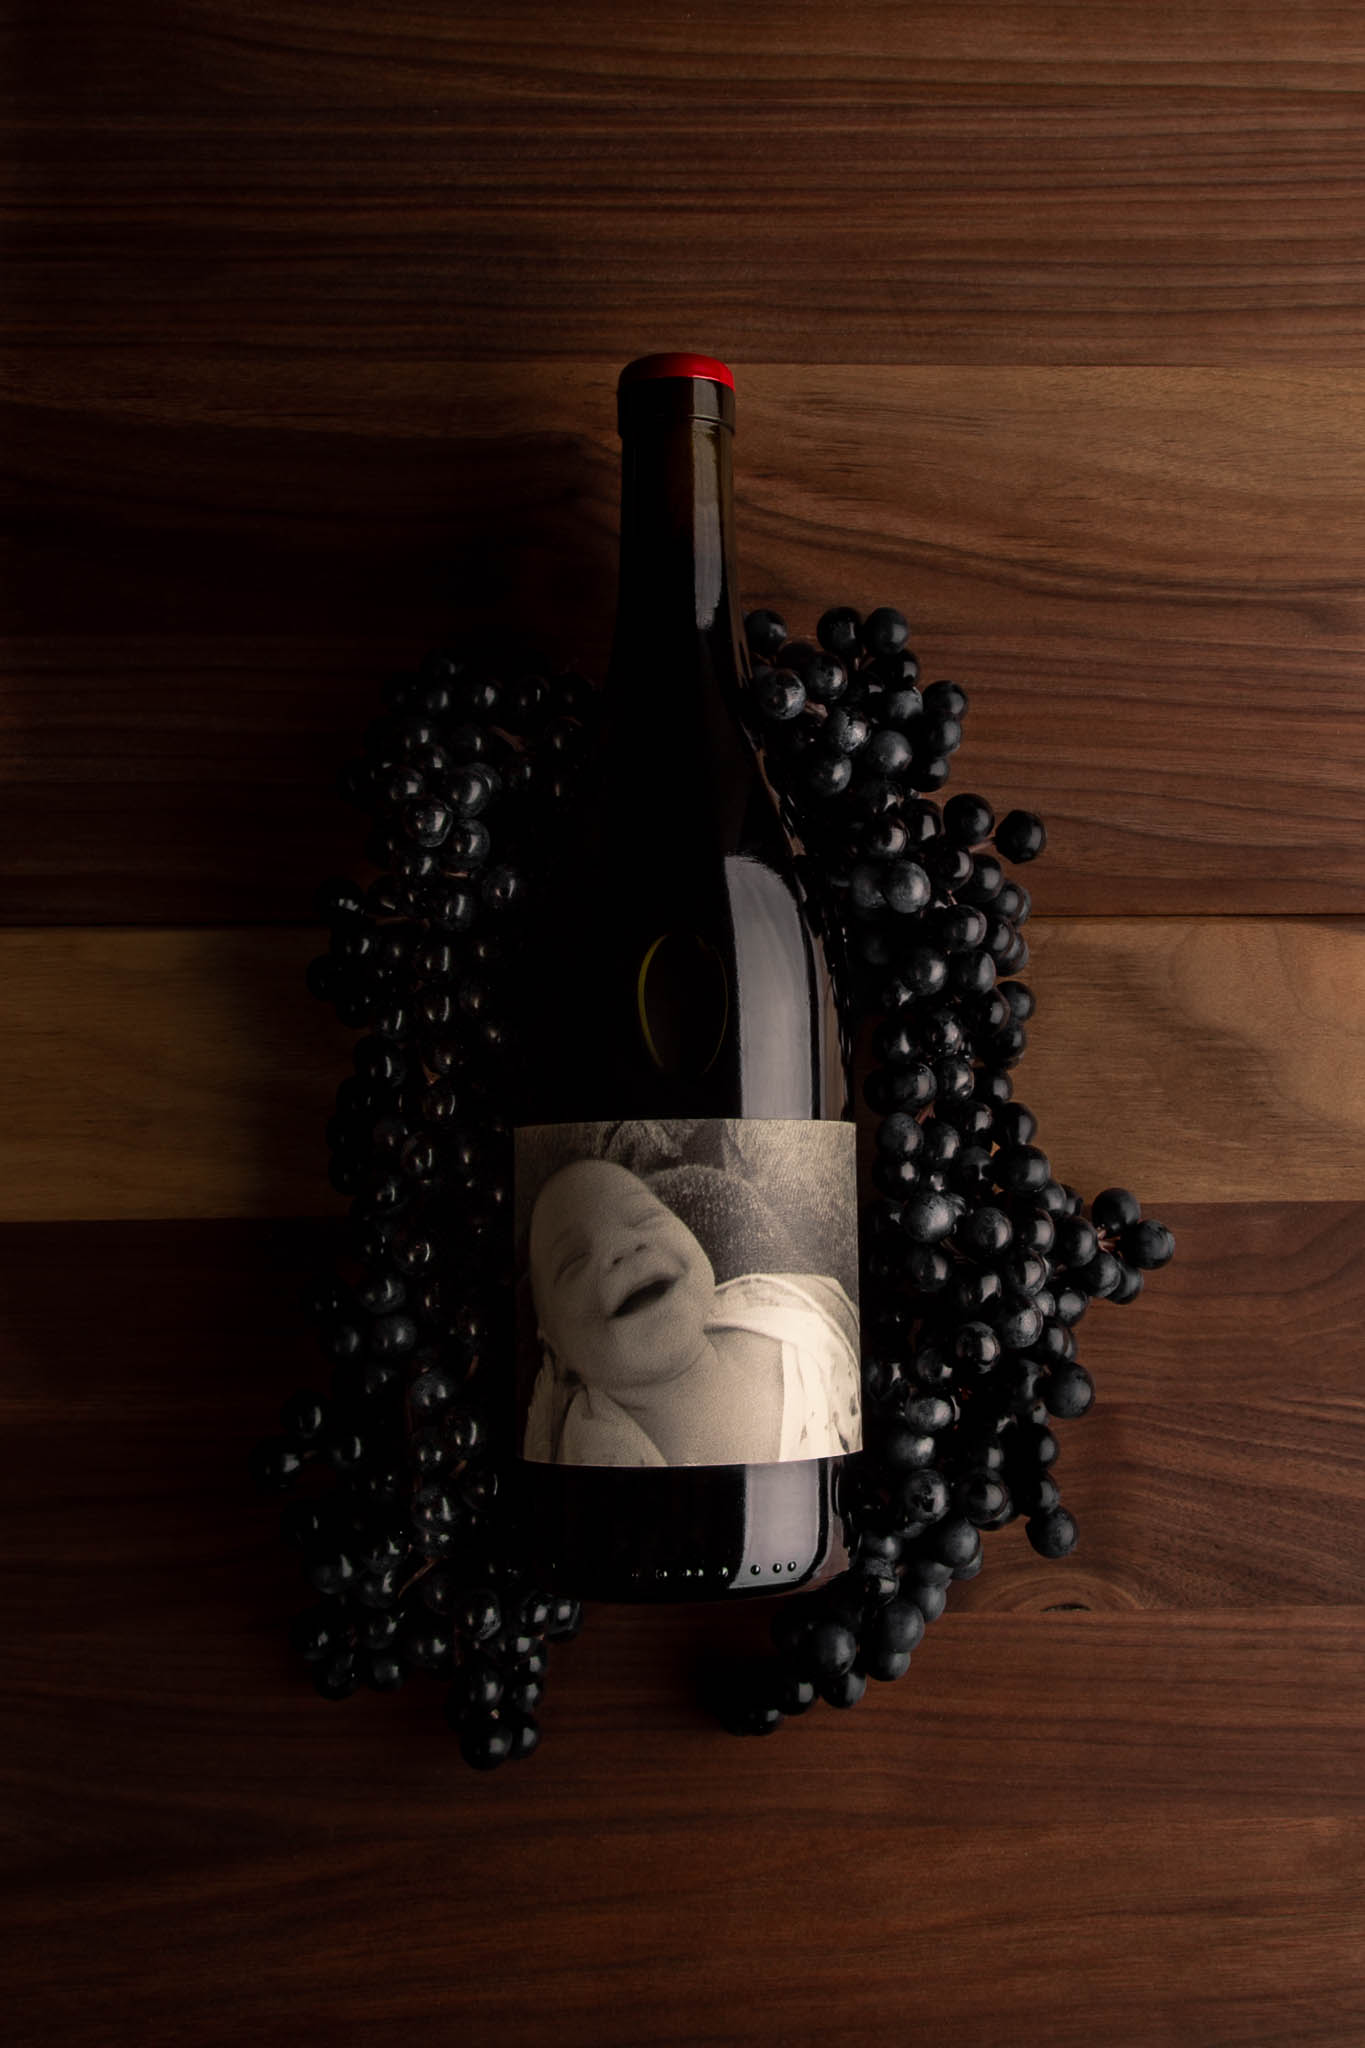 San Luis Obispo Wine Photography by Amarie Design Co. for Deovlet Wines